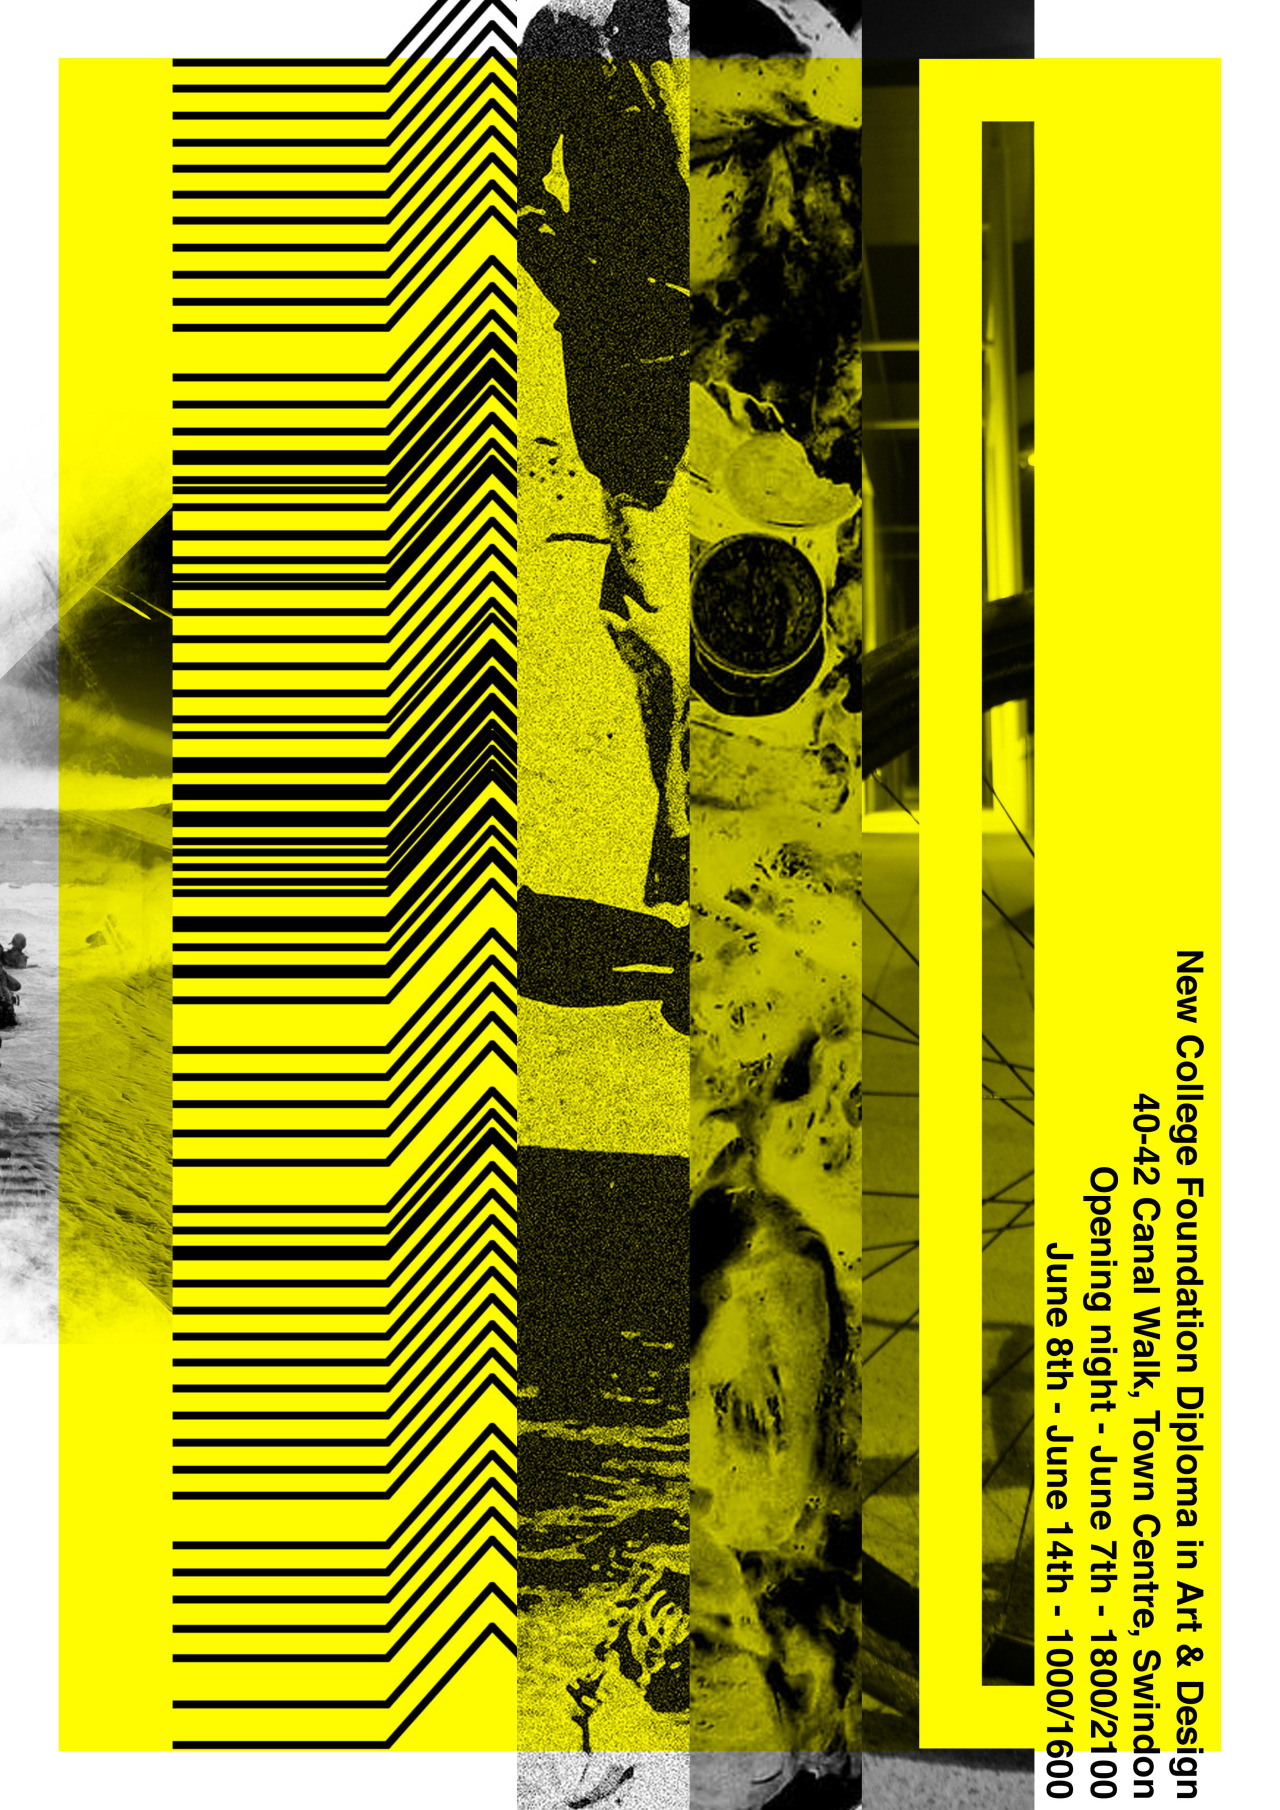 springtextures:  jtadesign:  Yellow edition.  So i designed the posters for my foundation diploma in art and design classes final exhibition. I made them a set of 4 showing the CMYK process. My personal favourites are yellow and the black.